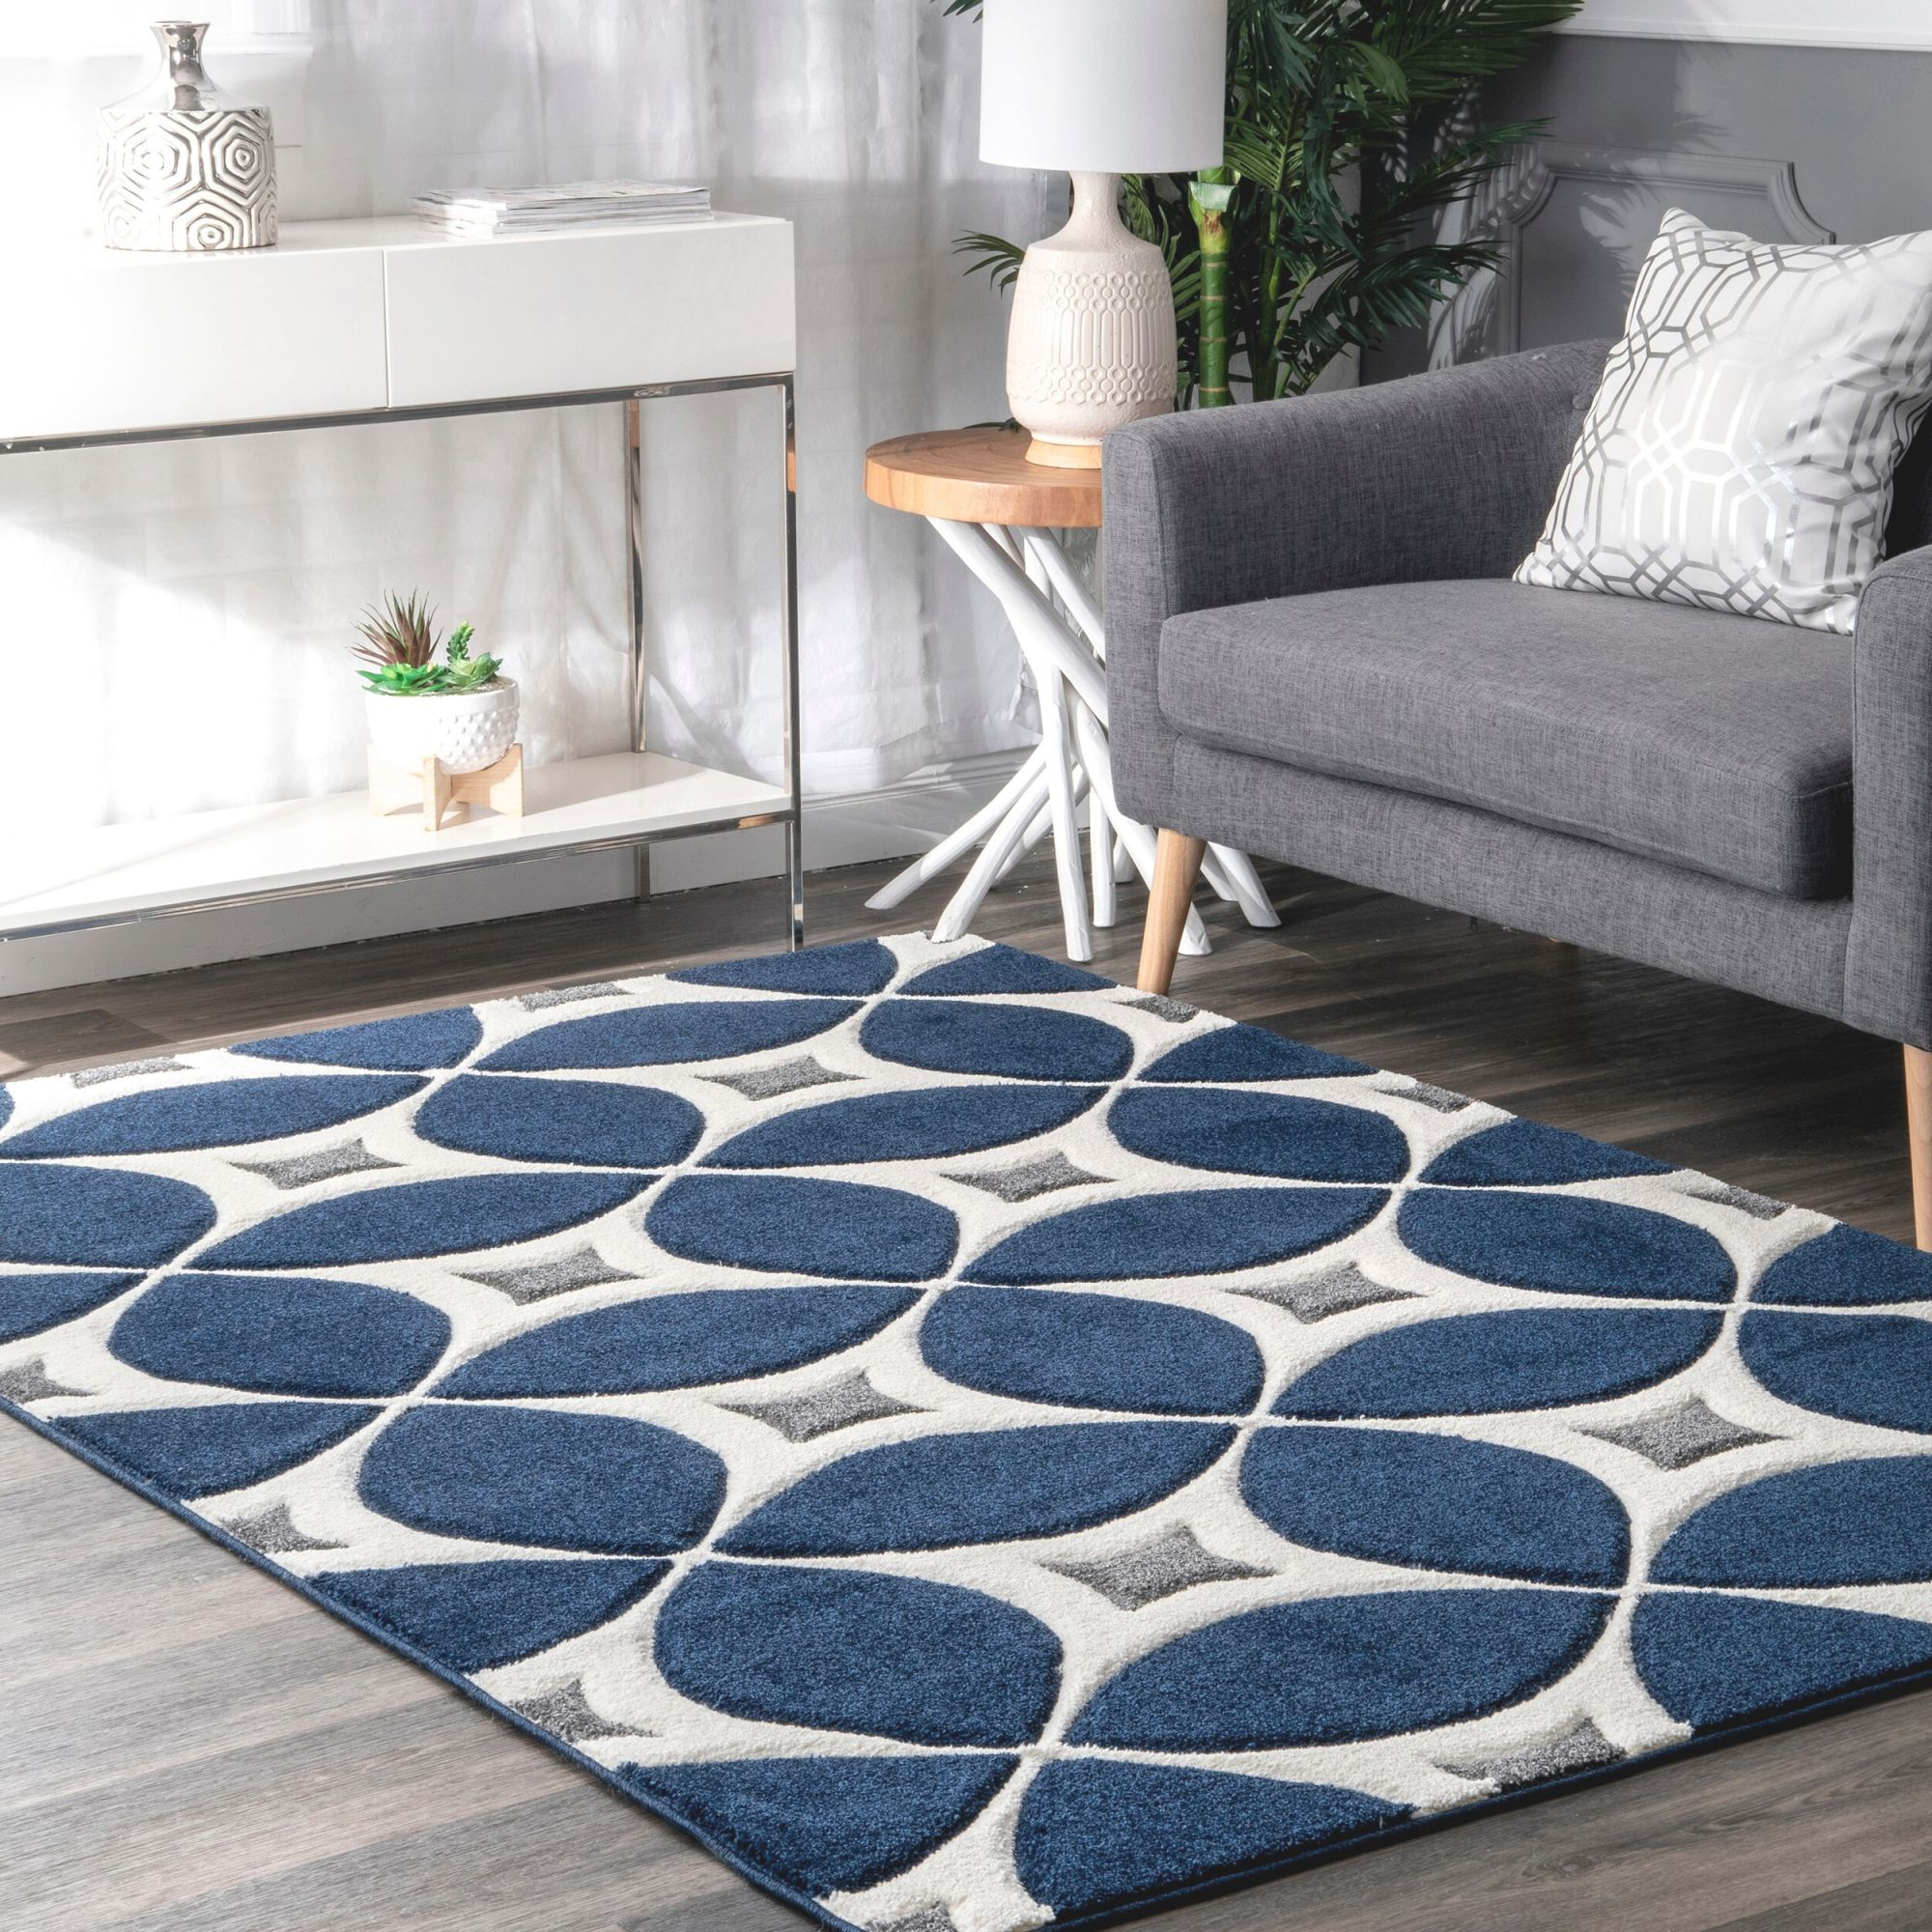 Jamar Geometric Handmade Tufted Jute/Sisal Navy Blue Area Rug regarding Blue And Grey Living Room